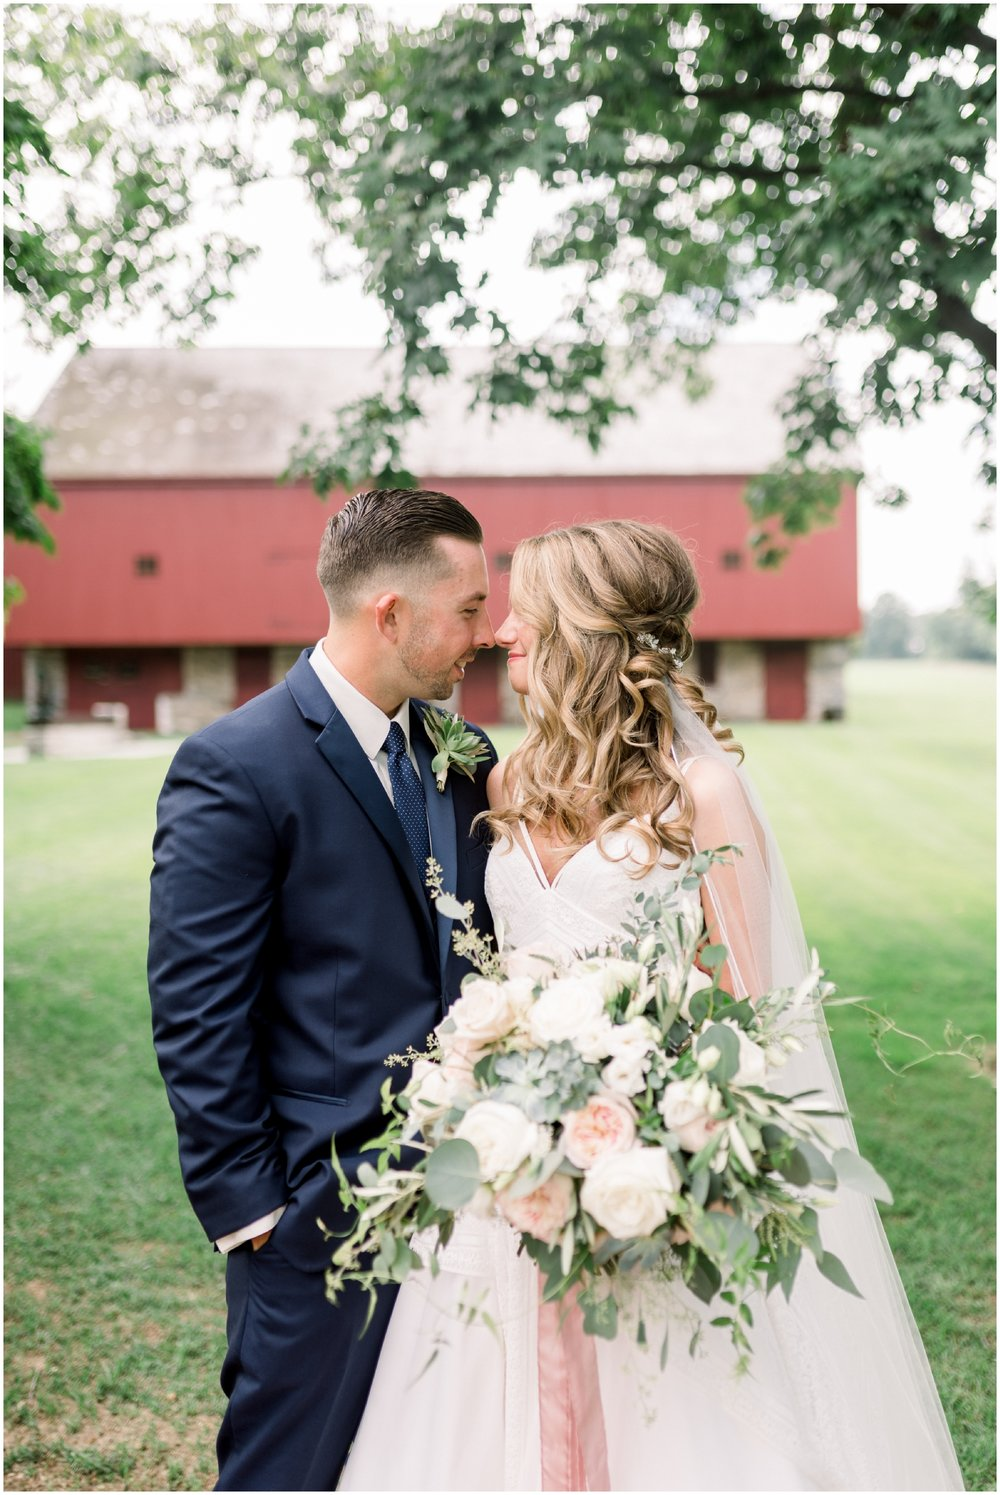 Krista Brackin Photography | July Wedding at The Farm at Eagle's Ridge_0012.jpg